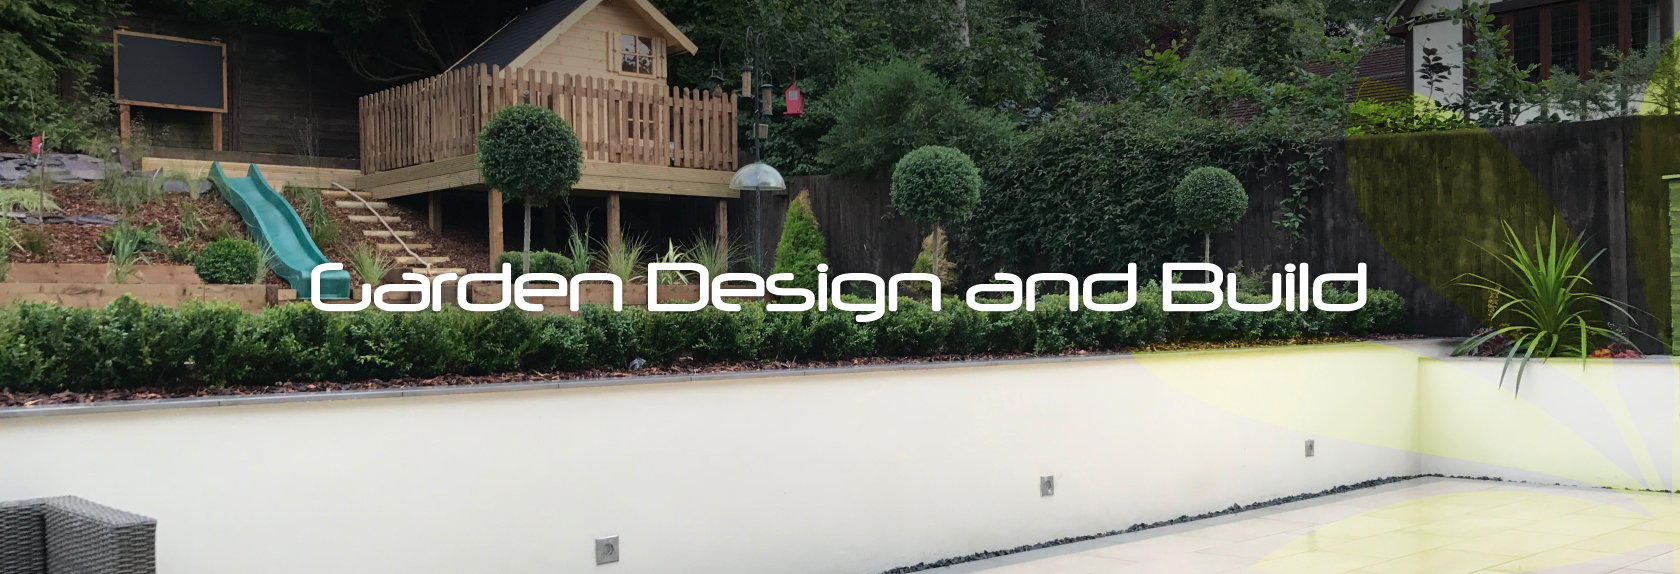 Landscaping Luton